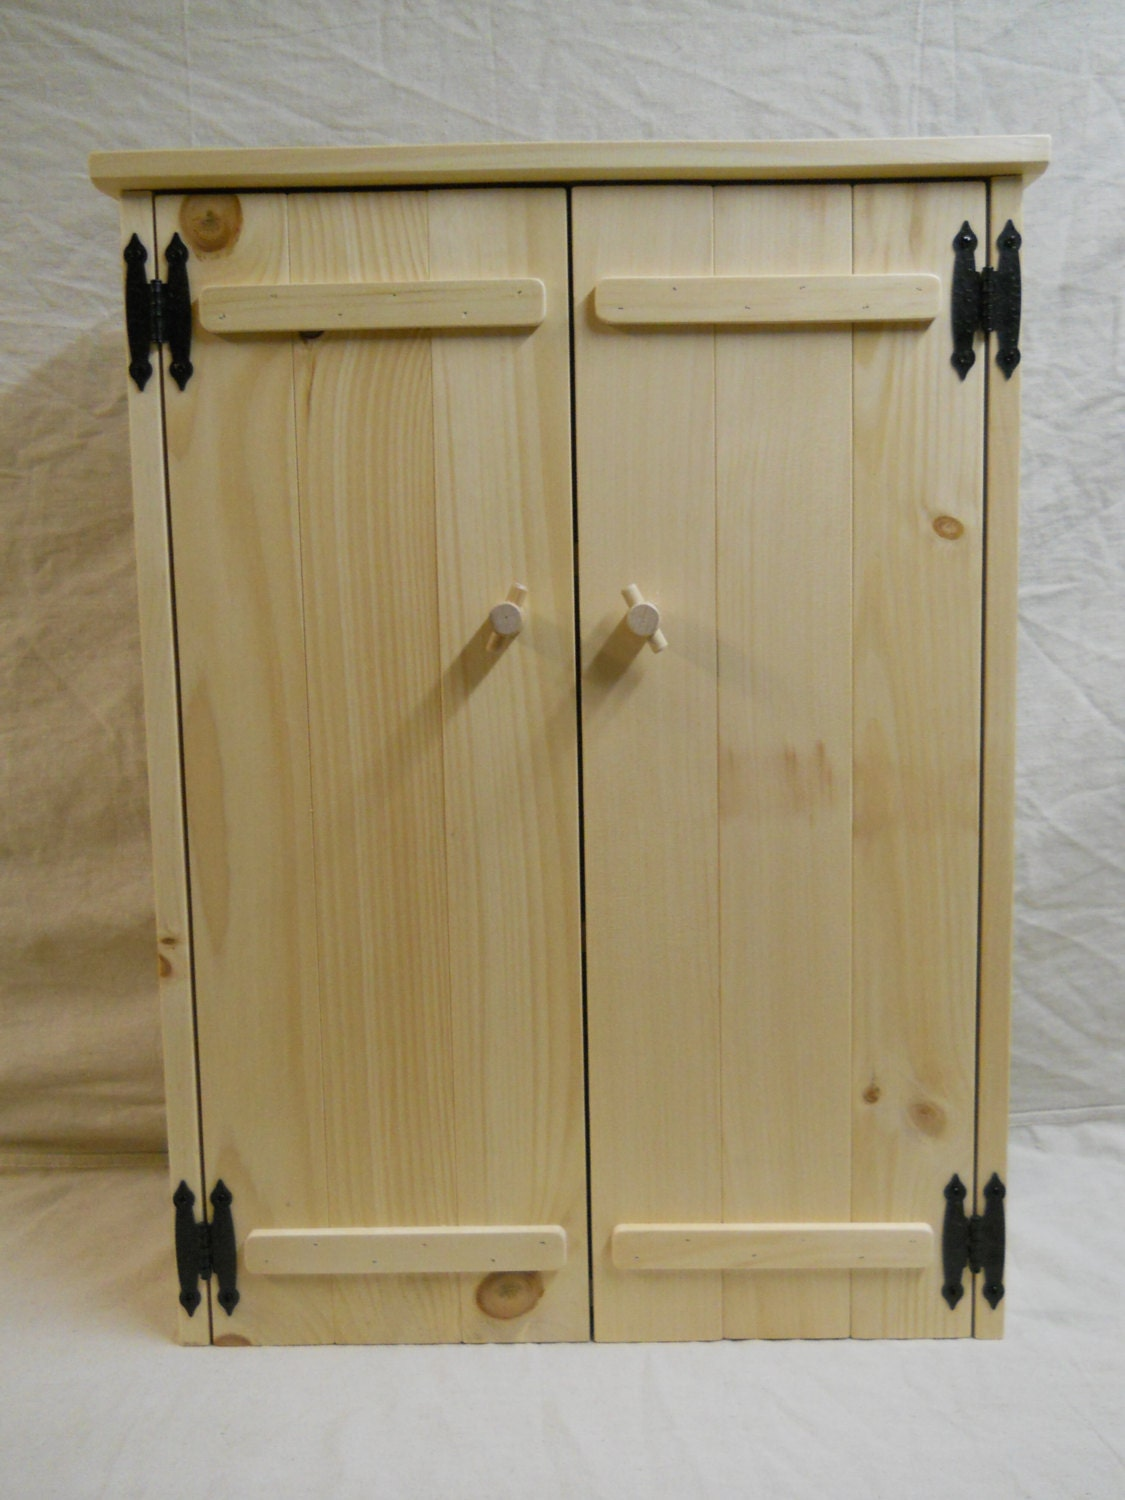 Https Www Etsy Com Listing 264392045 Knotty Pine Bathroom Cabinet